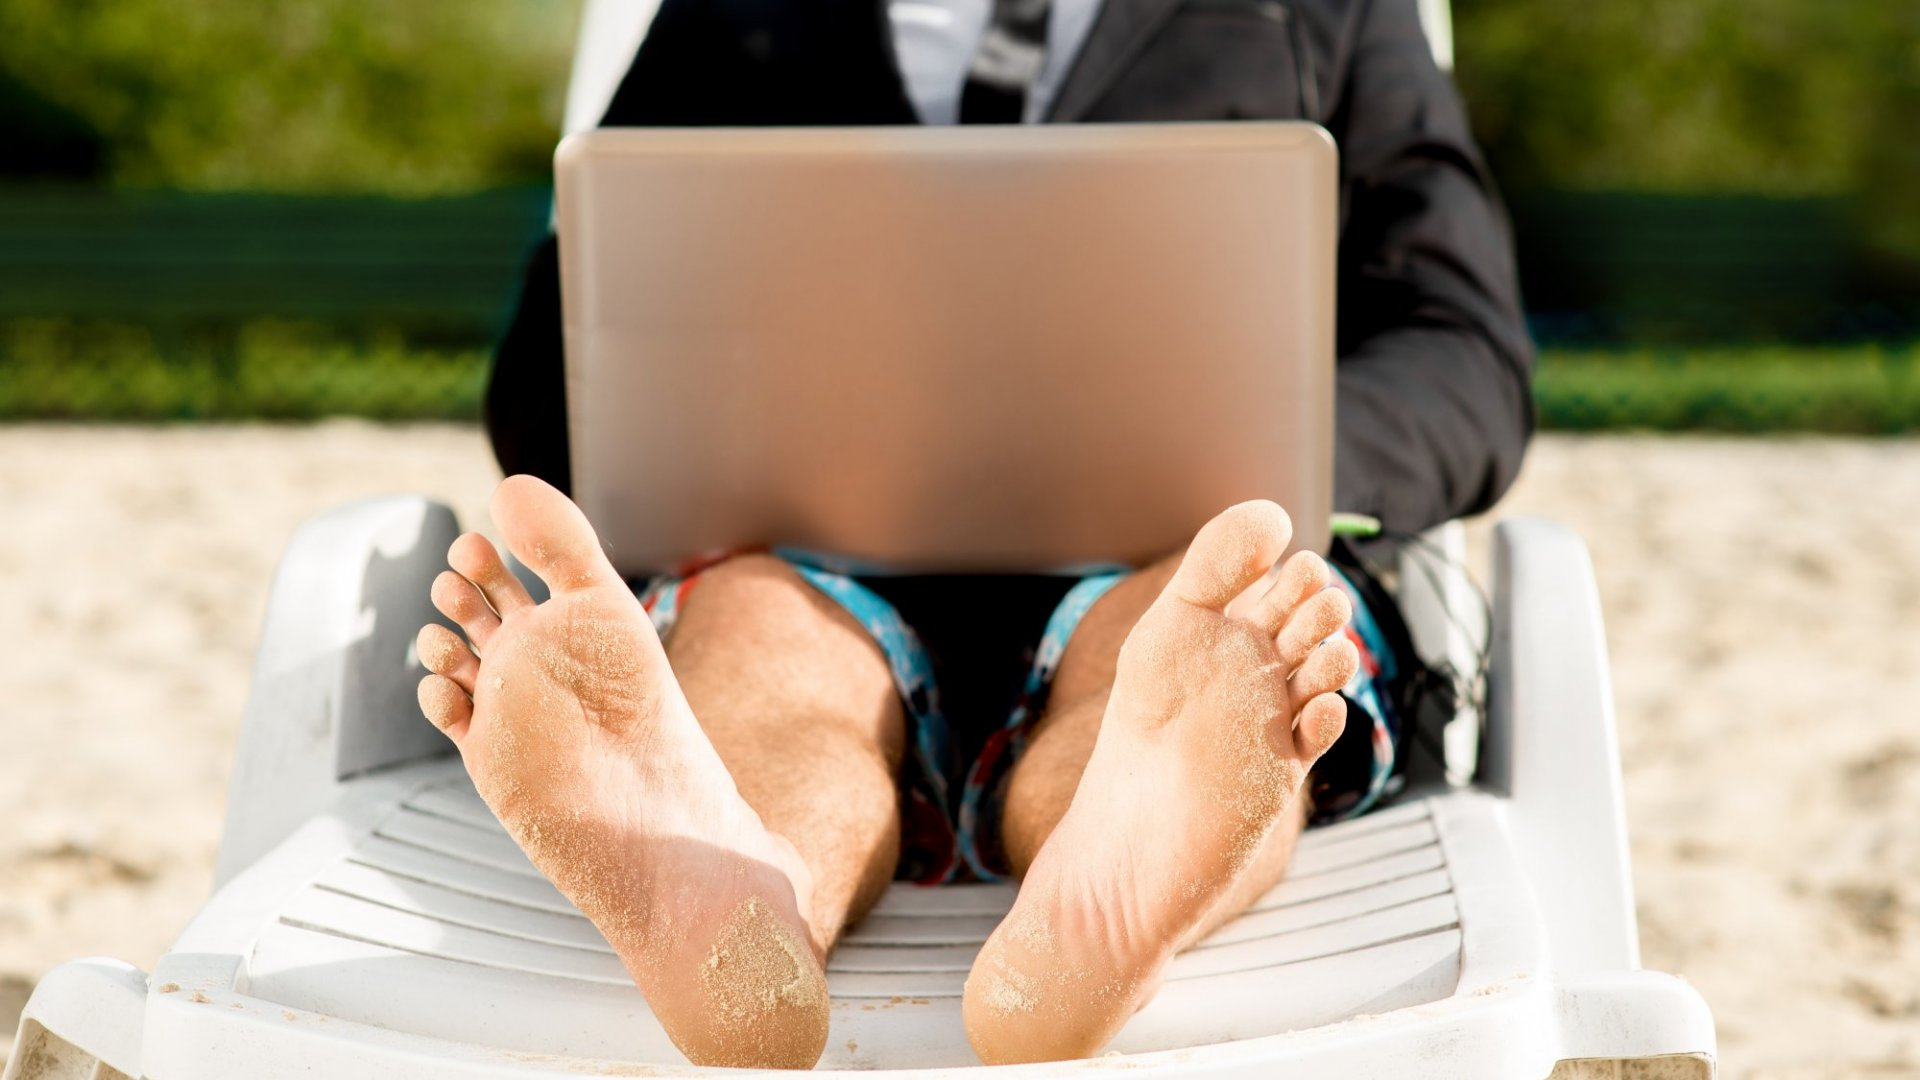 35 Percent of All Workers Are Freelance? Not Quite